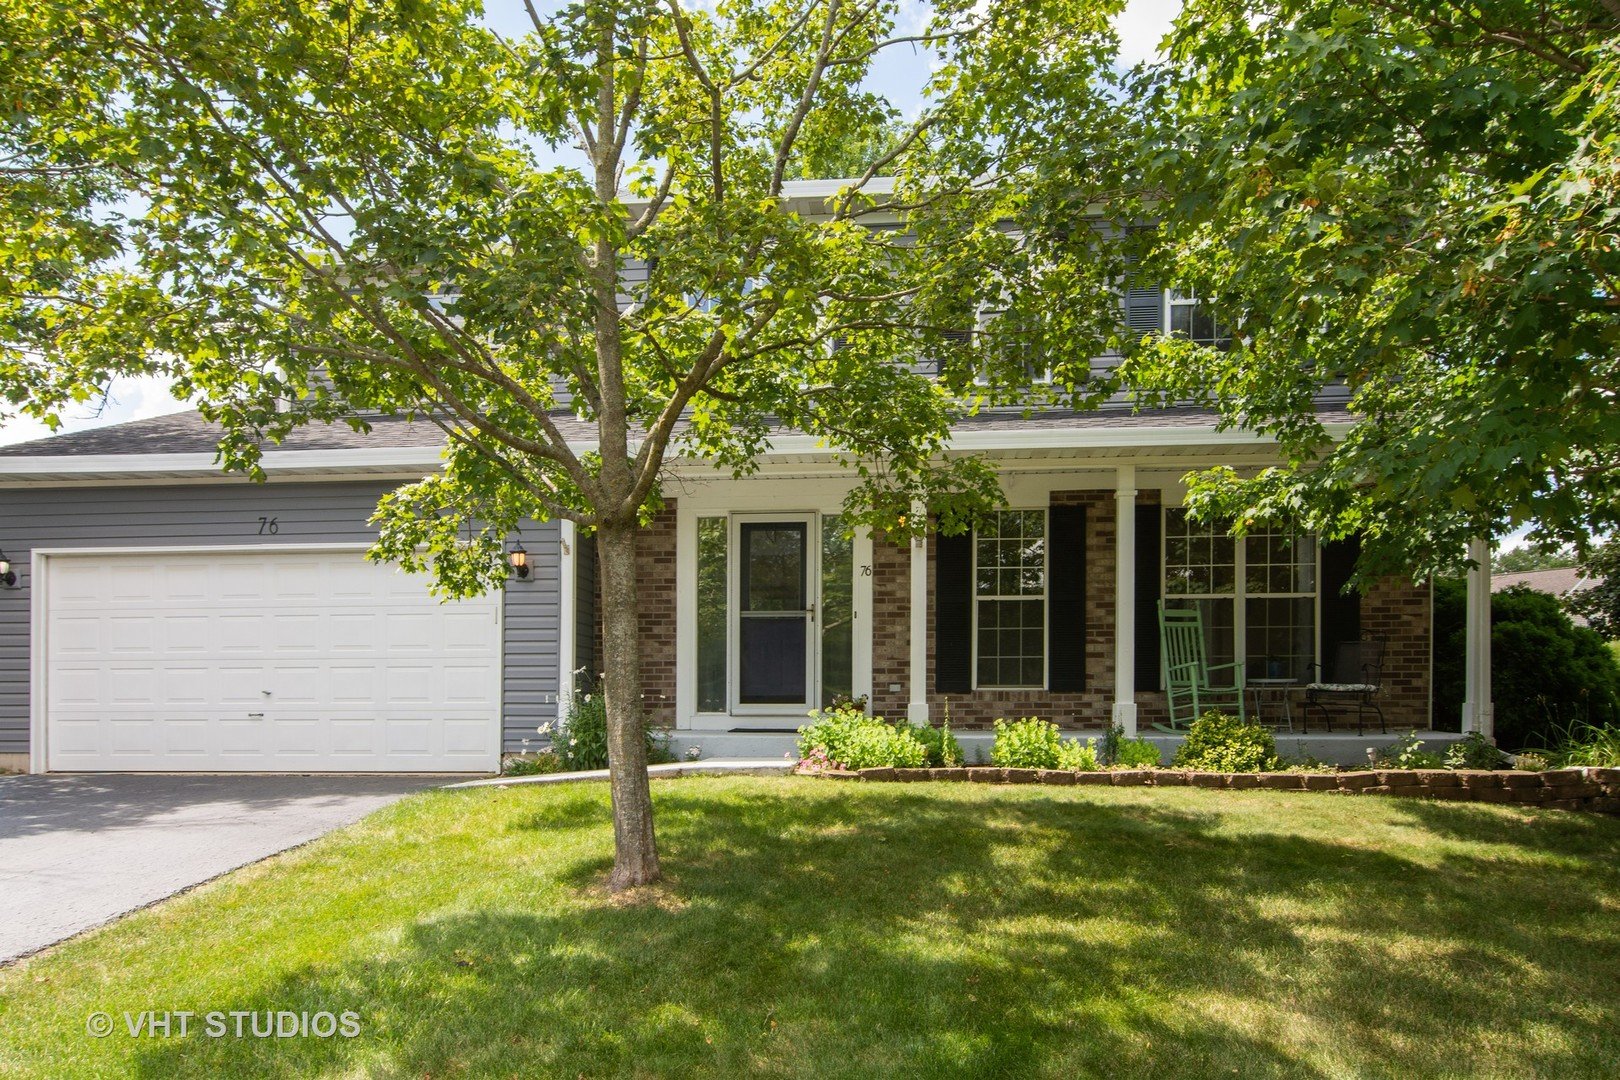 Photo for 76 Ivanhoe Lane, CARY, IL 60013 (MLS # 10474090)